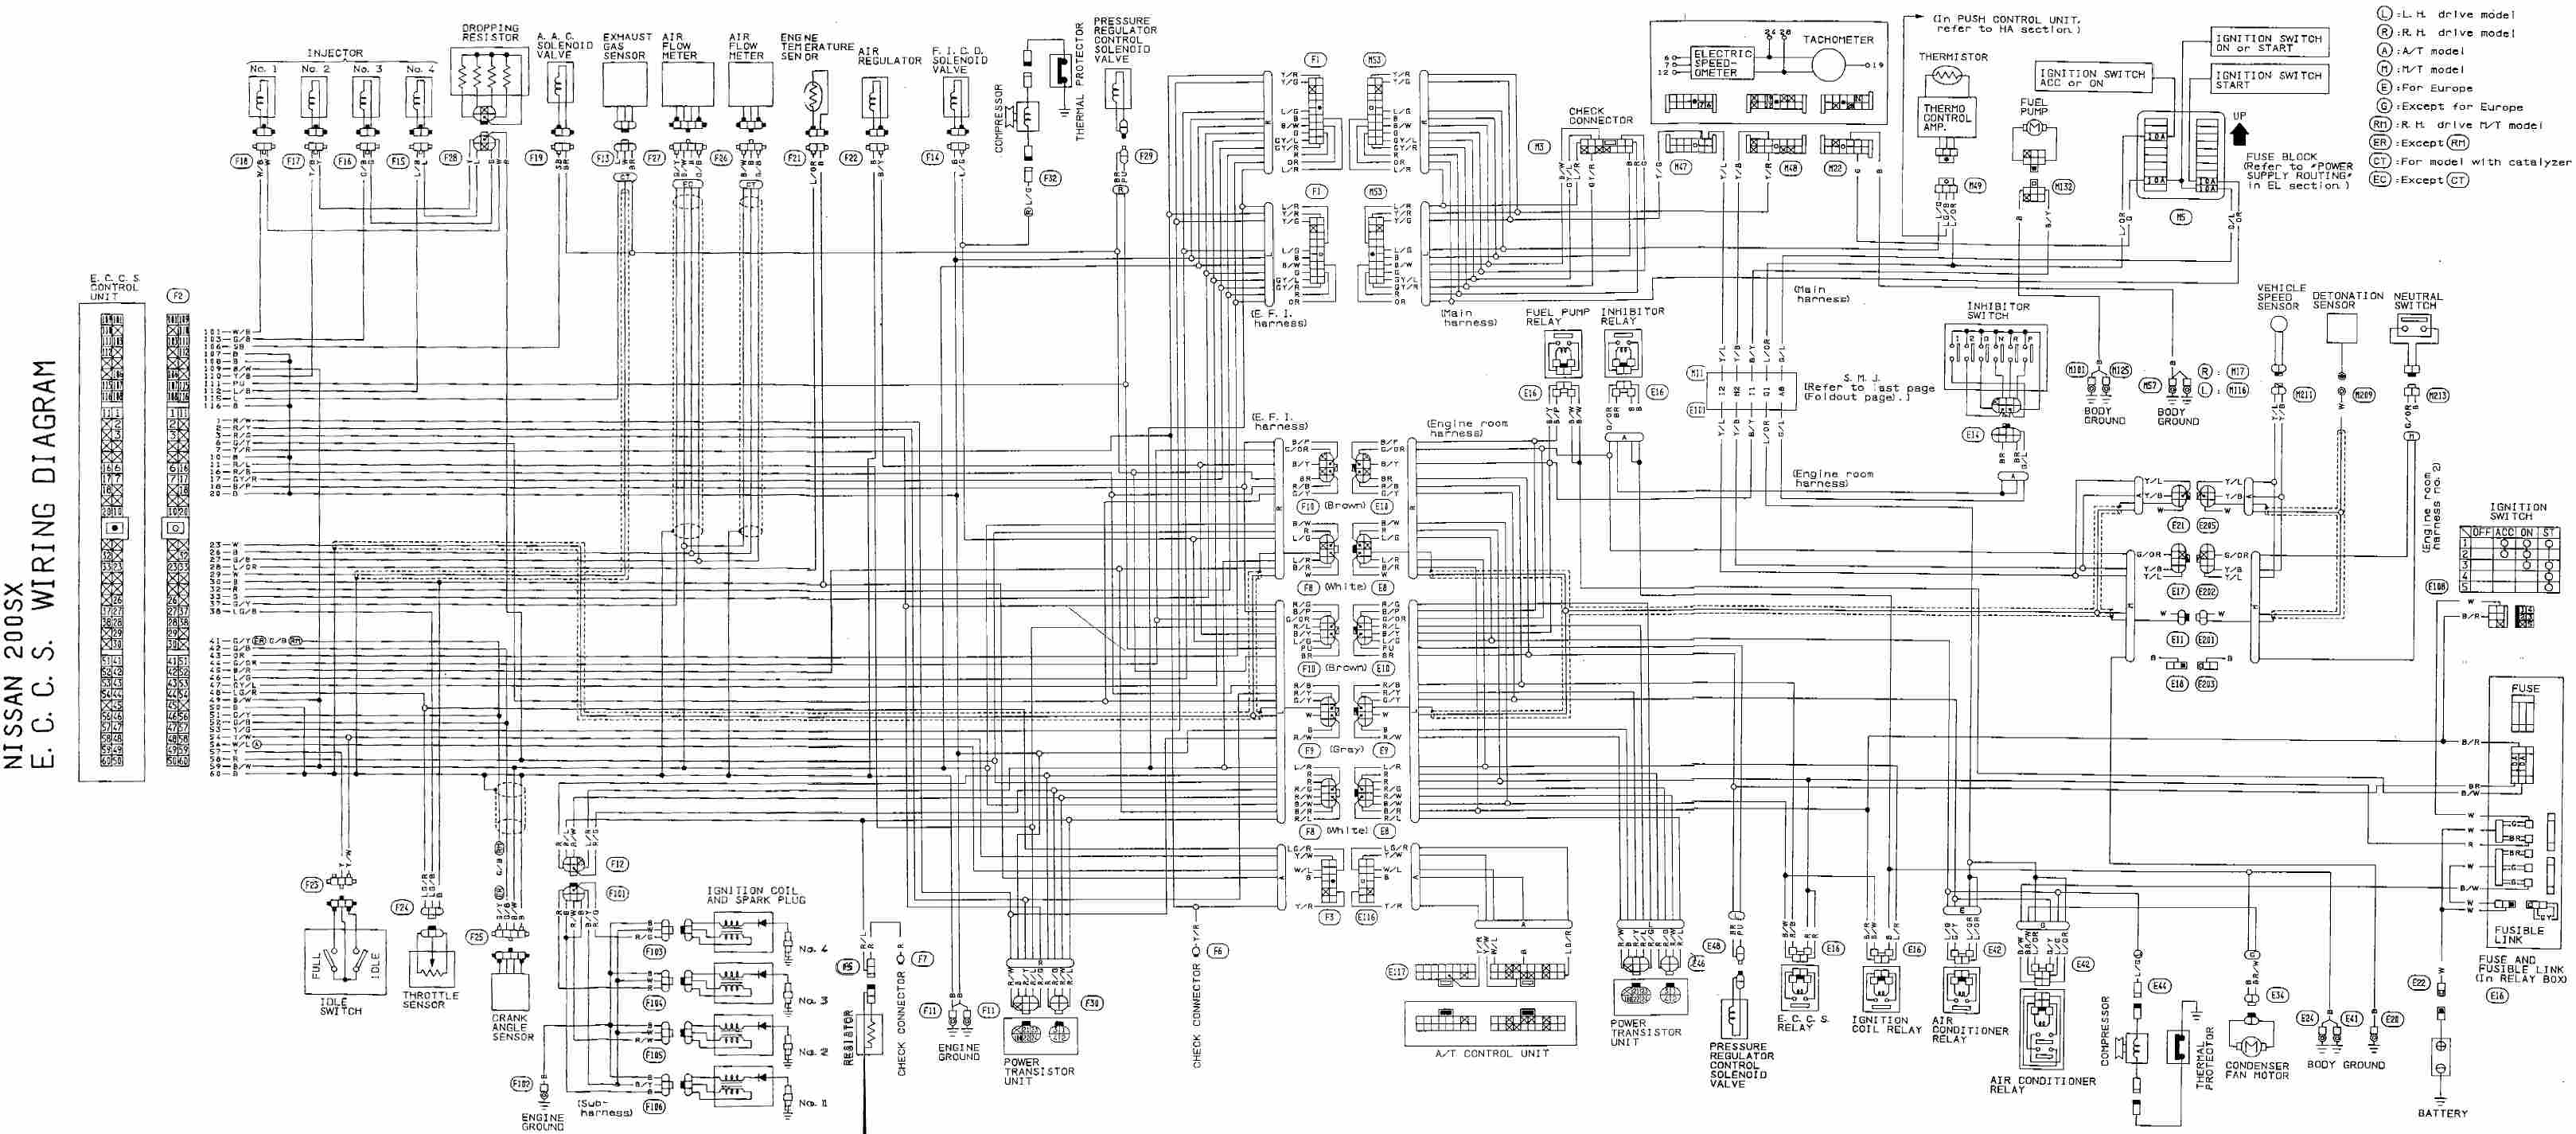 complete eccs wiring diagram of nissan 200x?t\=1508500919 300zx wiring diagram 300zx engine wiring diagram \u2022 wiring diagrams 2005 nissan sentra wiring diagram at virtualis.co